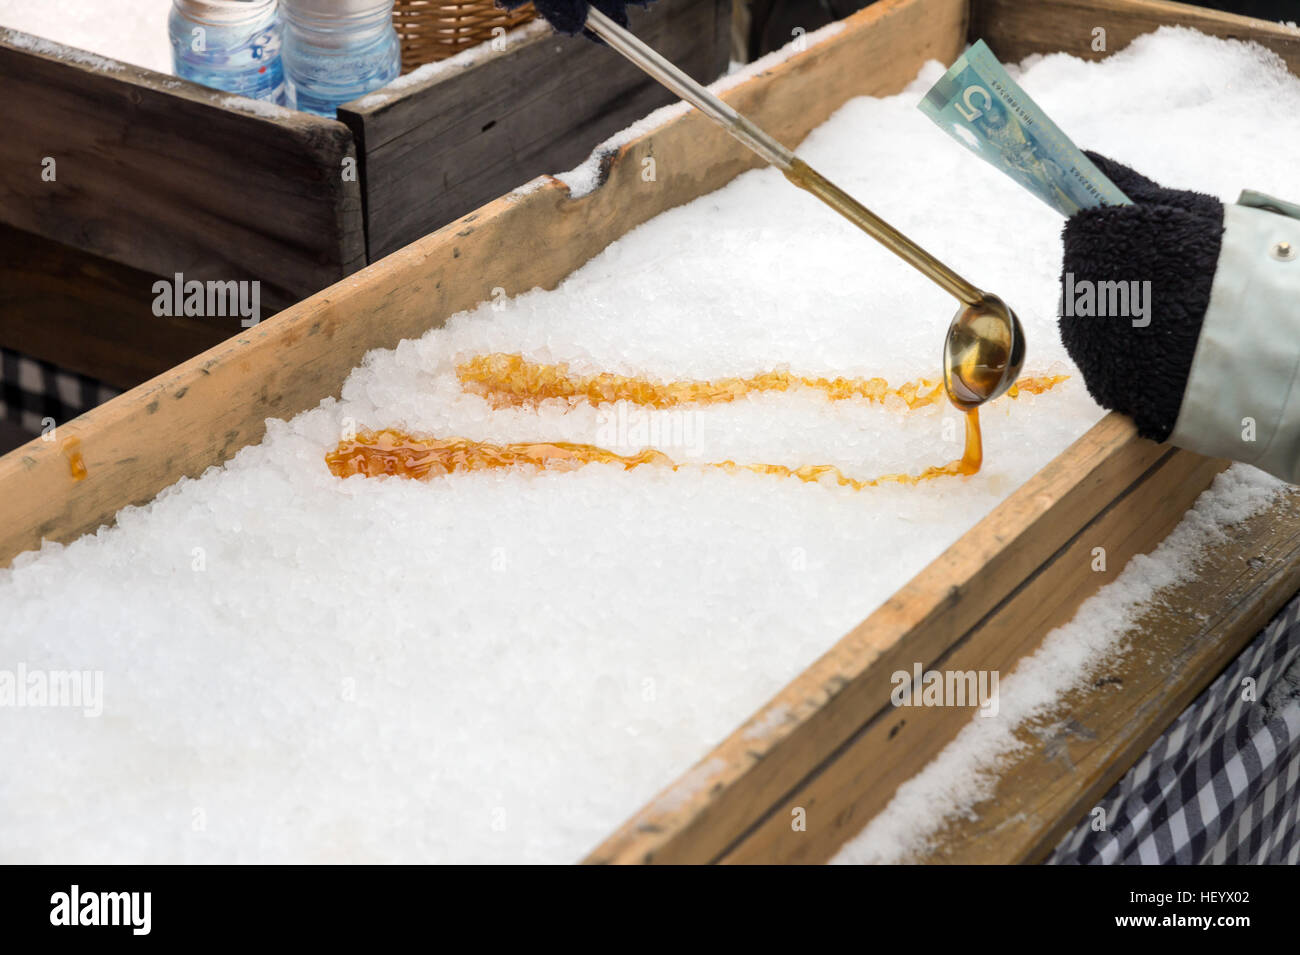 Montreal, CA - 17 December 2016: Maple taffy on snow in Montreal, Quebec, Canada, with someone waiting to pay - Stock Image